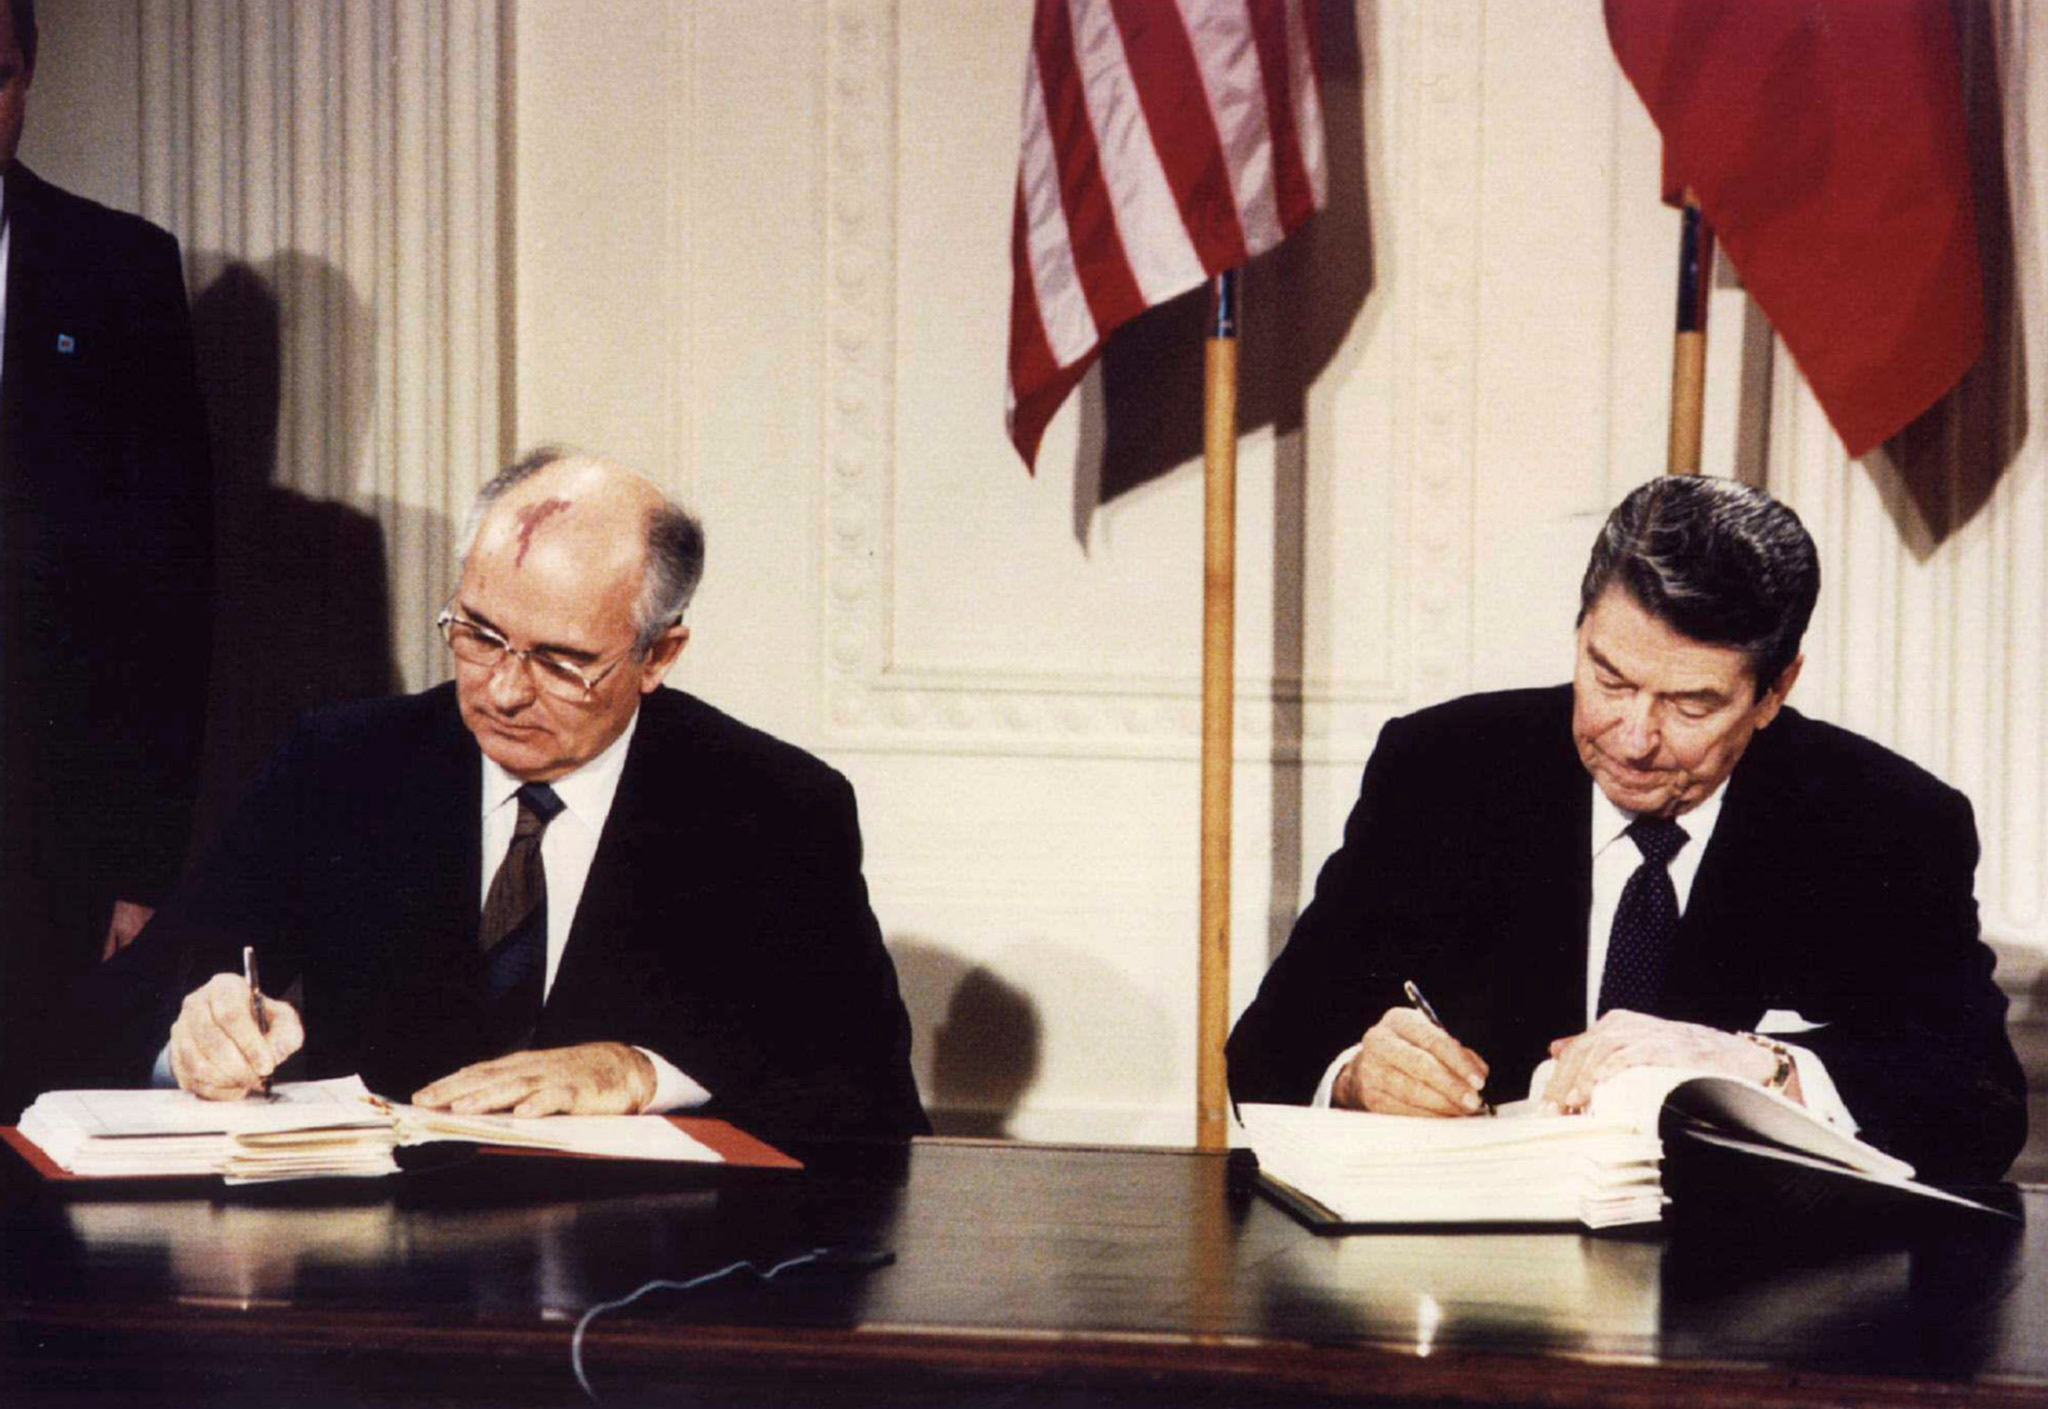 """File photo of U.S. President Ronald Reagan (R) and Soviet President Mikhail Gorbachev signing the Intermediate-Range Nuclear Forces (INF) treaty at the White House, on December 8 1987. [Reagan was elected as the 40th U.S. president in 1980. Former U.S. President Reagan's health is deteriorating and he could have only weeks to live, a U.S. source close to the situation said on June 4, 2004. Reagan, now 93, has long suffered from the brain-wasting Alzheimer's disease. The source said Reagan's condition had worsened in the past week. """"The time is getting close,"""" he said.] Reuters"""